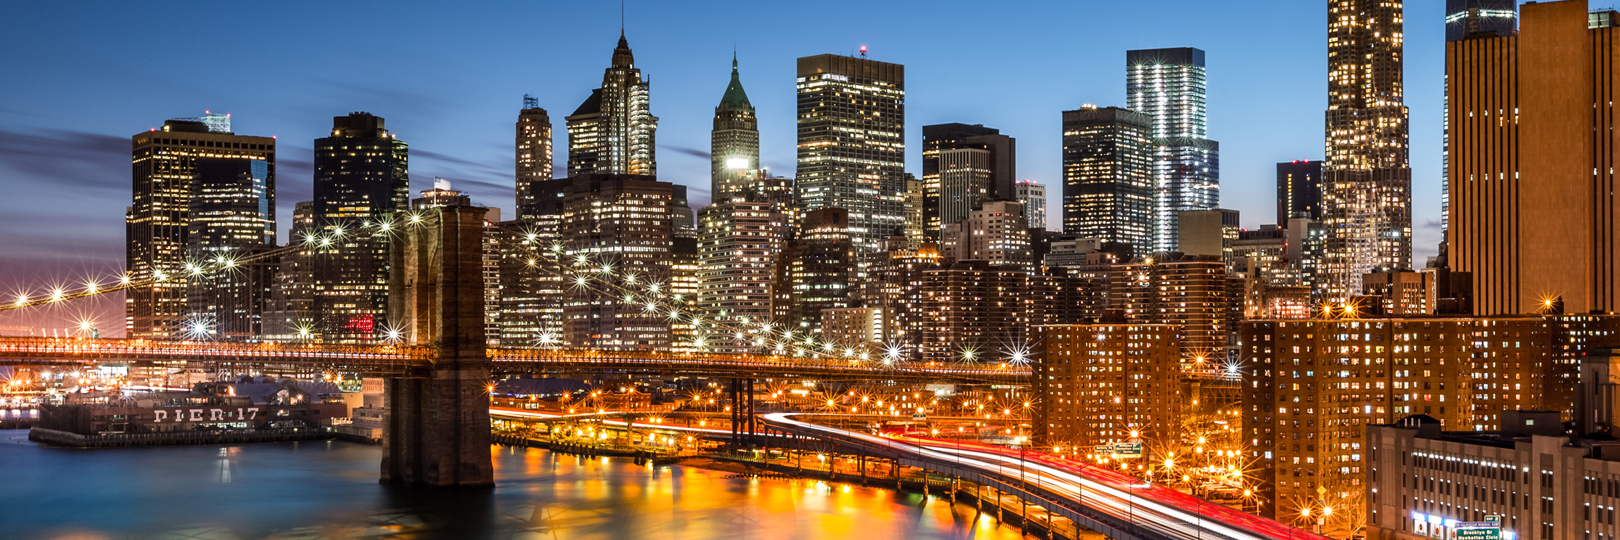 $99 per night for 2 at Row NYC